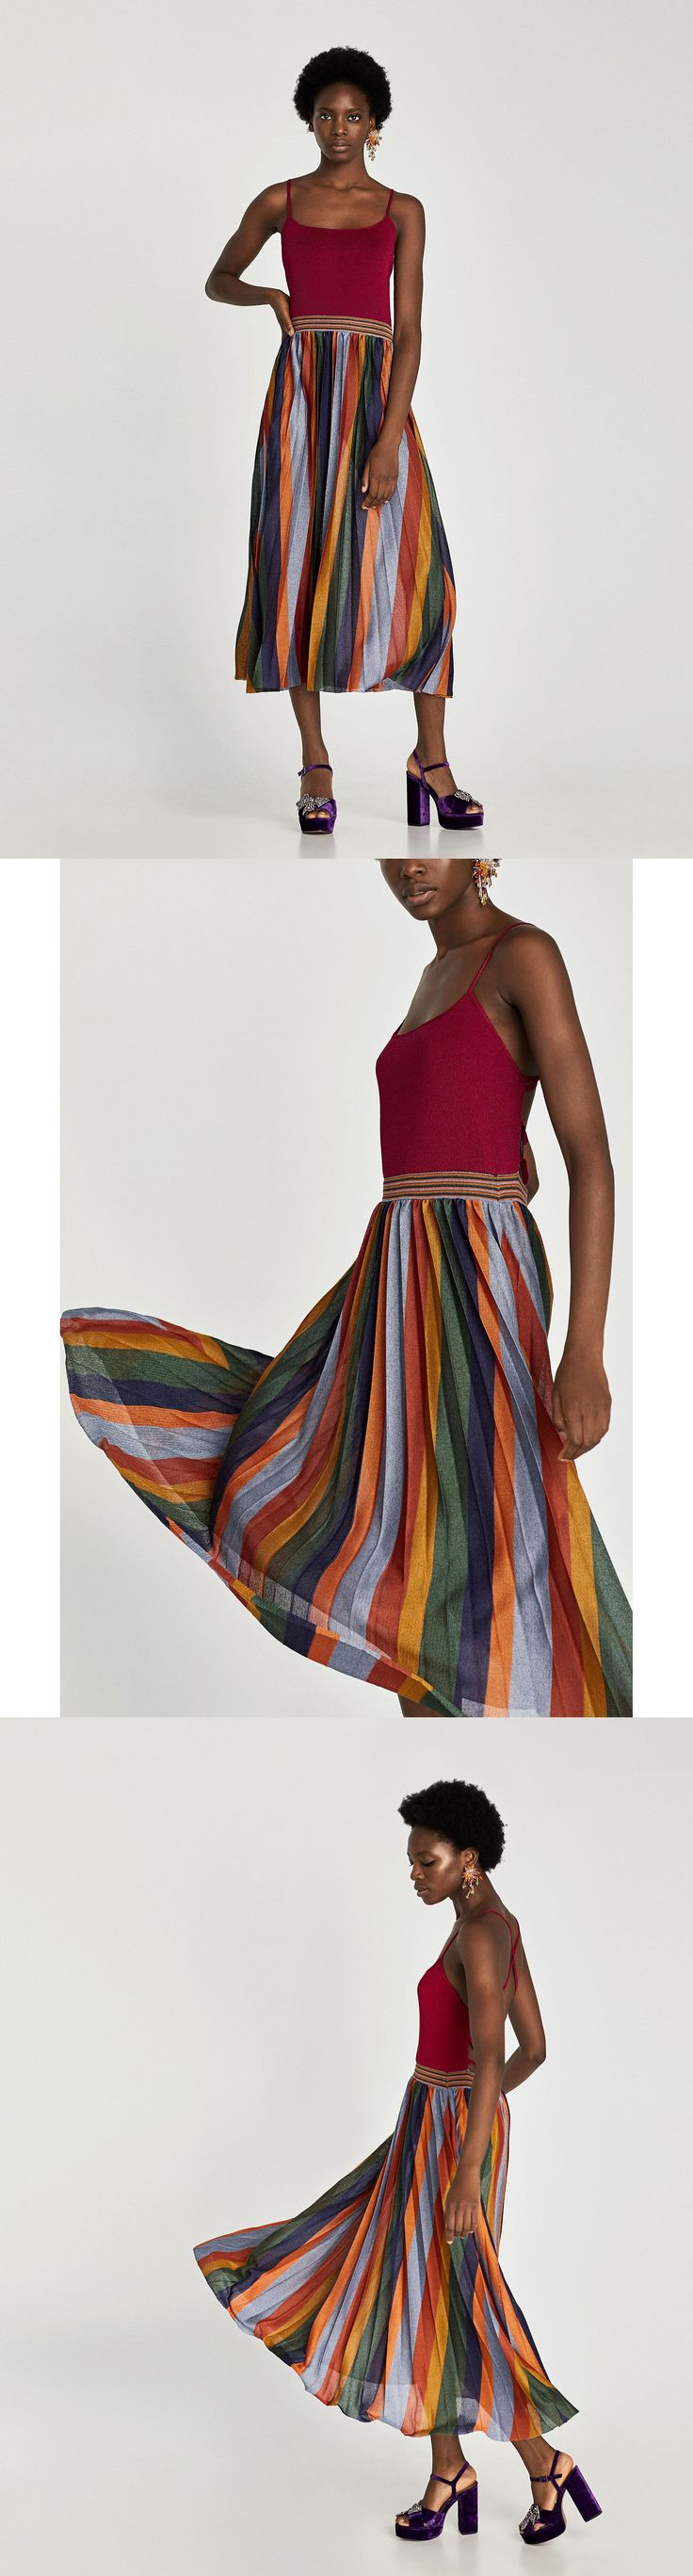 Striped Dress With Criss-Cross Back // 89.90 USD // Zara // Strappy dress featuring square neckline, cinched waist, pleated A-line skirt and criss-cross straps on the back. HEIGHT OF MODEL: 178 cm. / 5′ 10″